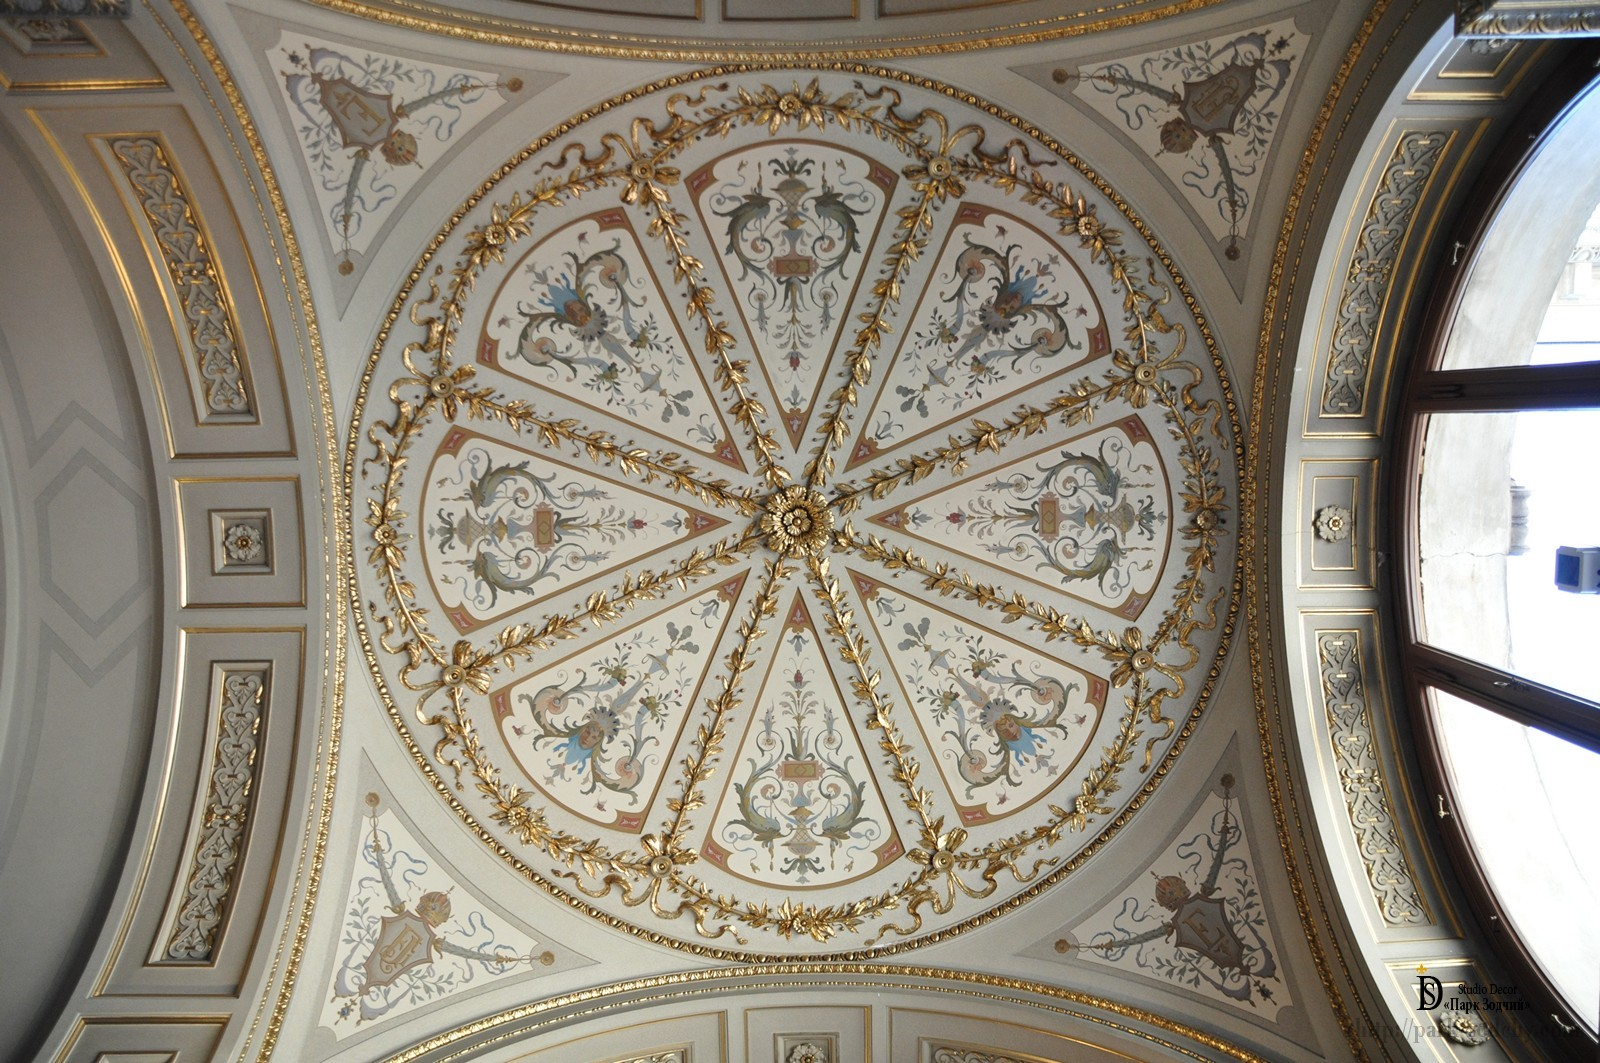 Painting on the ceiling in a classic style